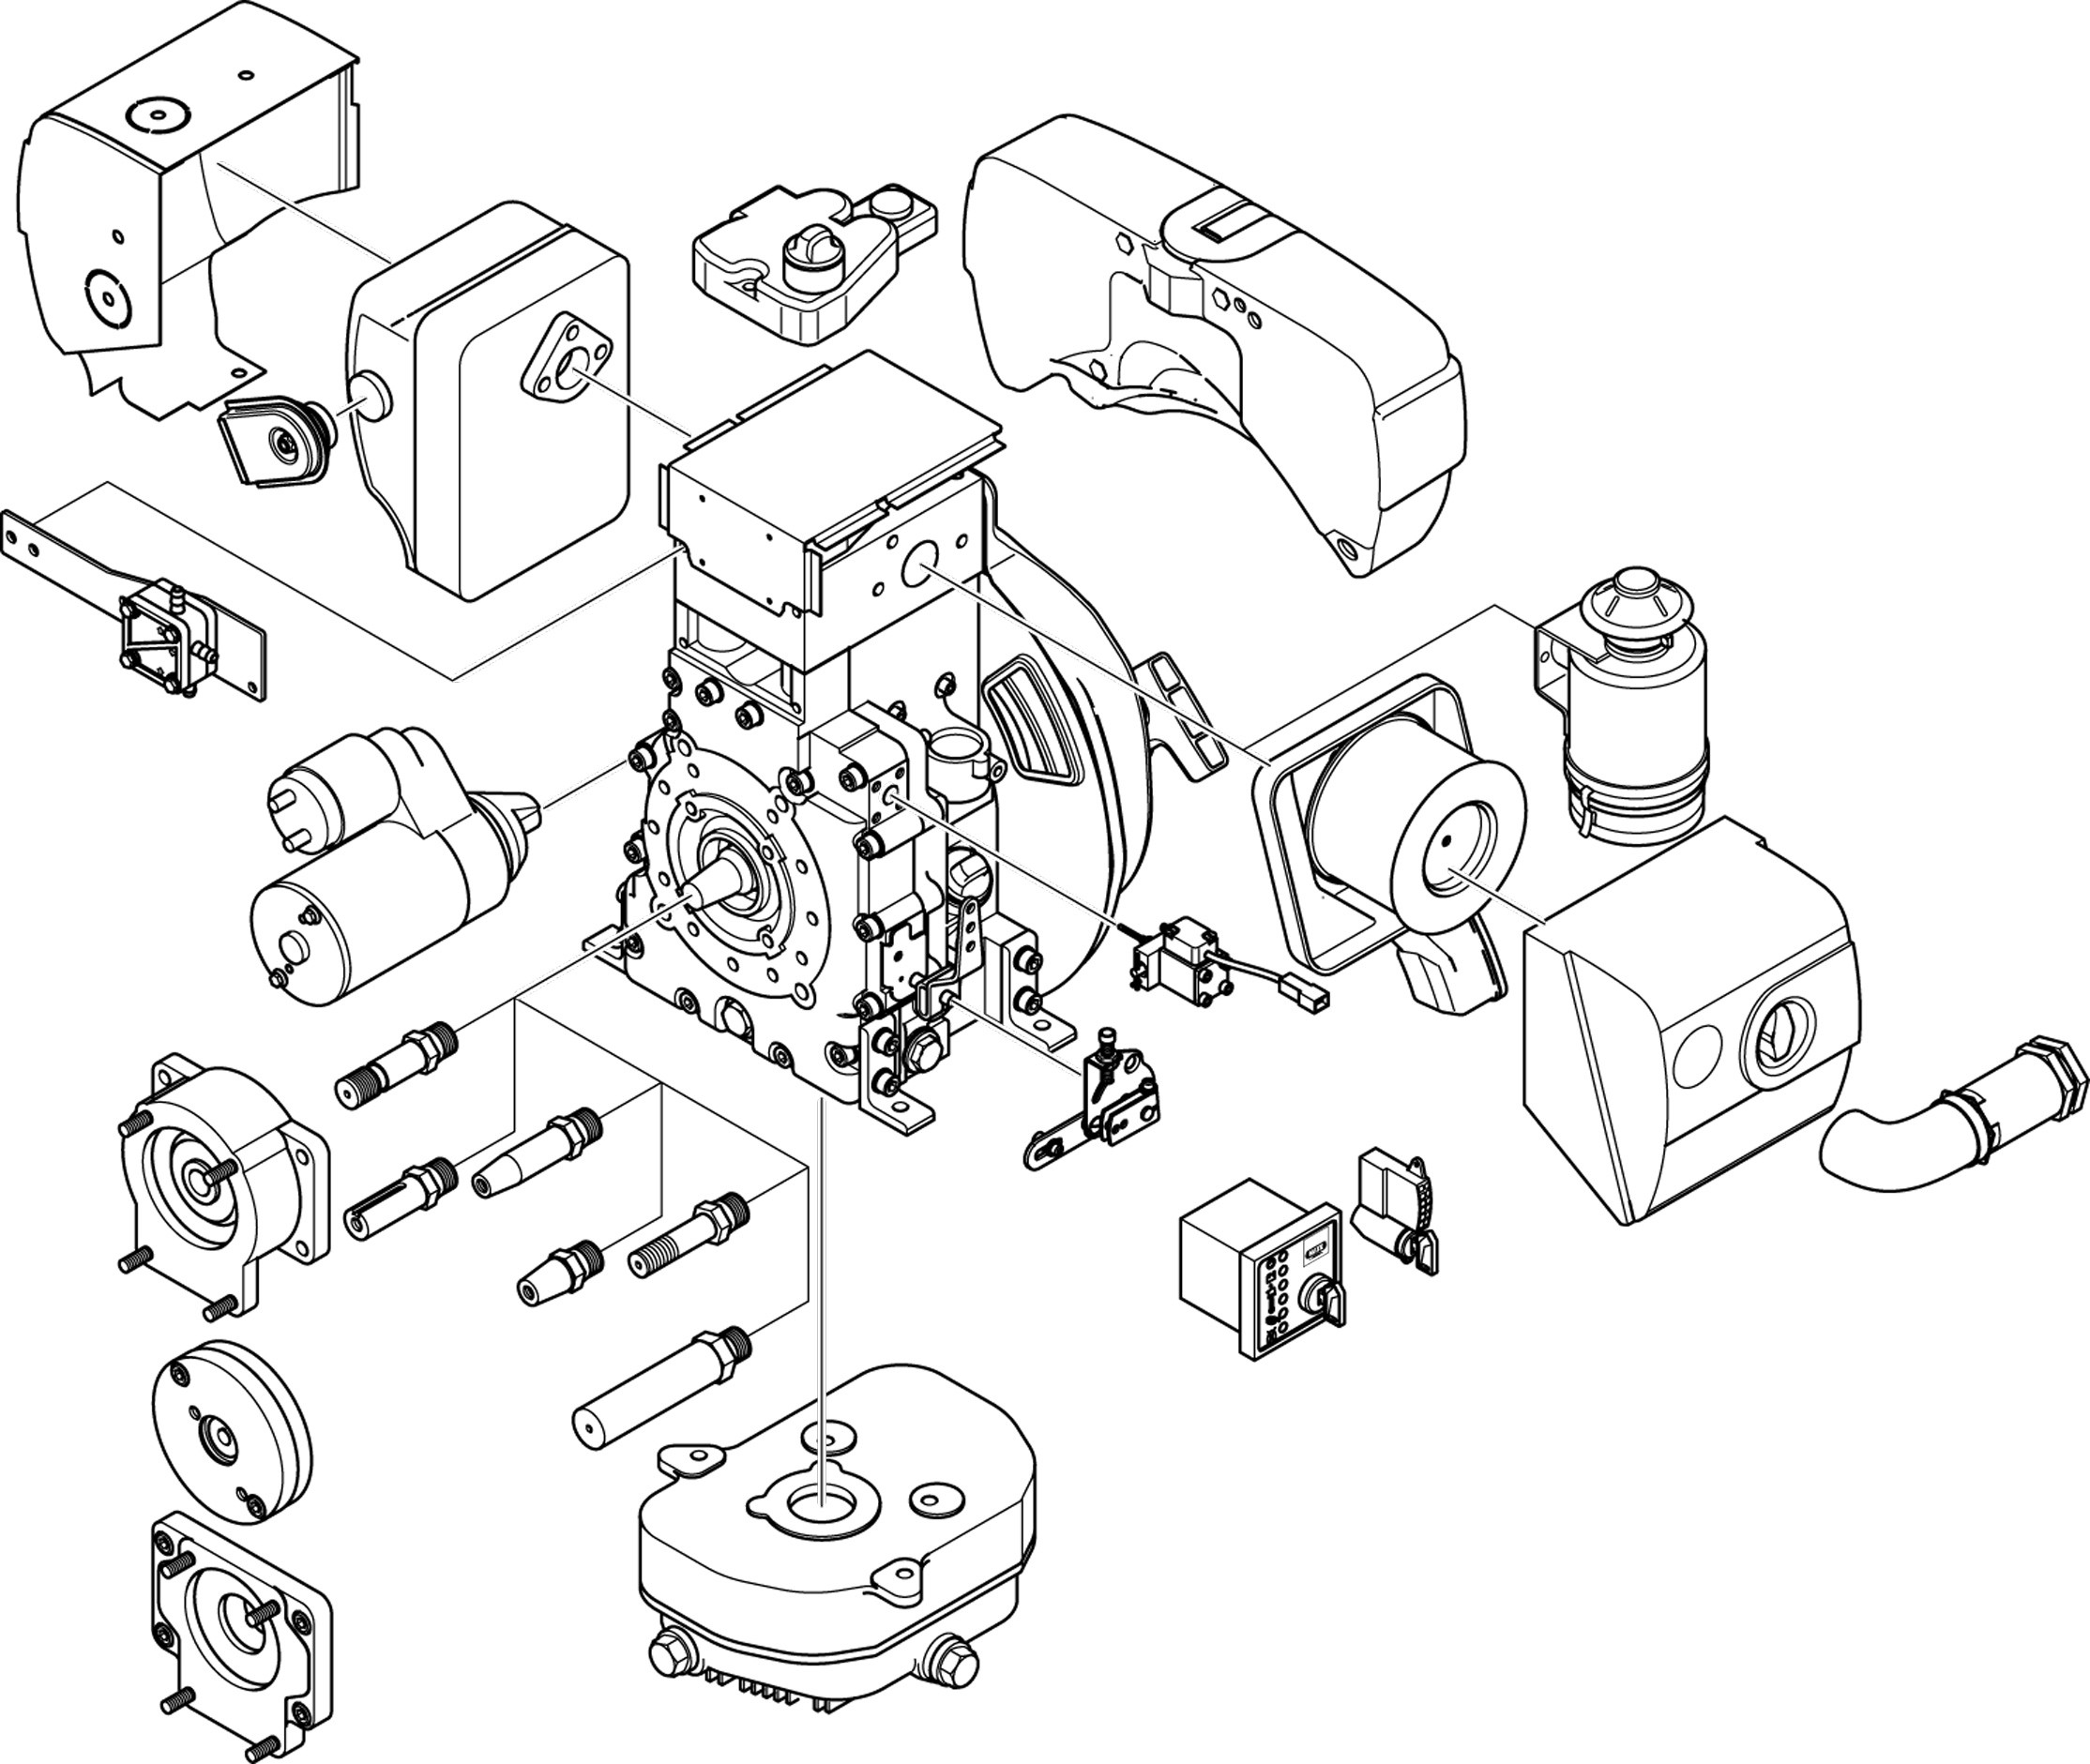 Club Car Engine Parts Diagram Hatz Engine Diagram Another Blog About Wiring Diagram • Of Club Car Engine Parts Diagram Starter Generator Wiring Diagram Golf Cart Reference Wiring Diagrams